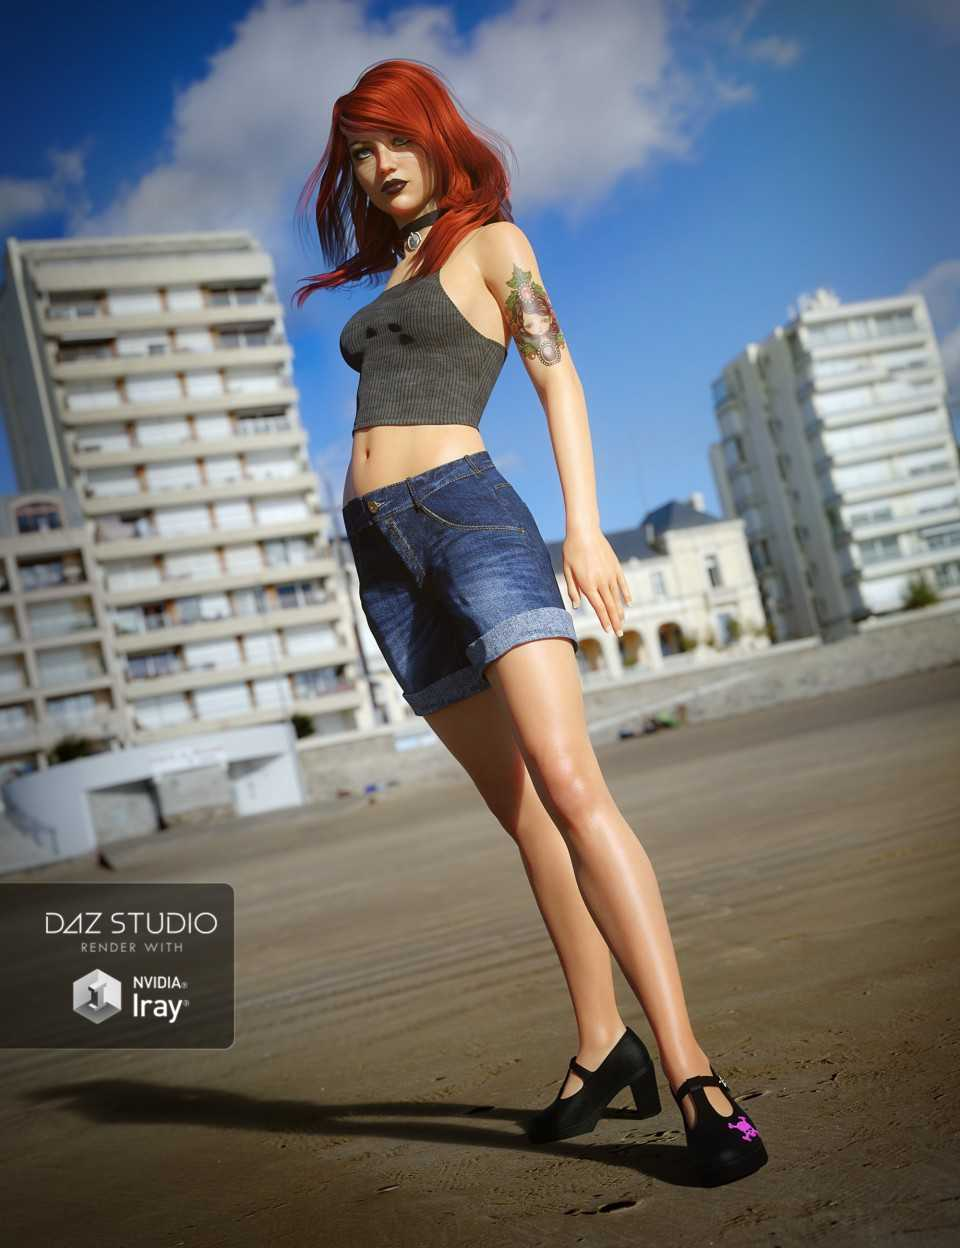 UltraHD IRAY HDRI With DOF – Seaside Resort